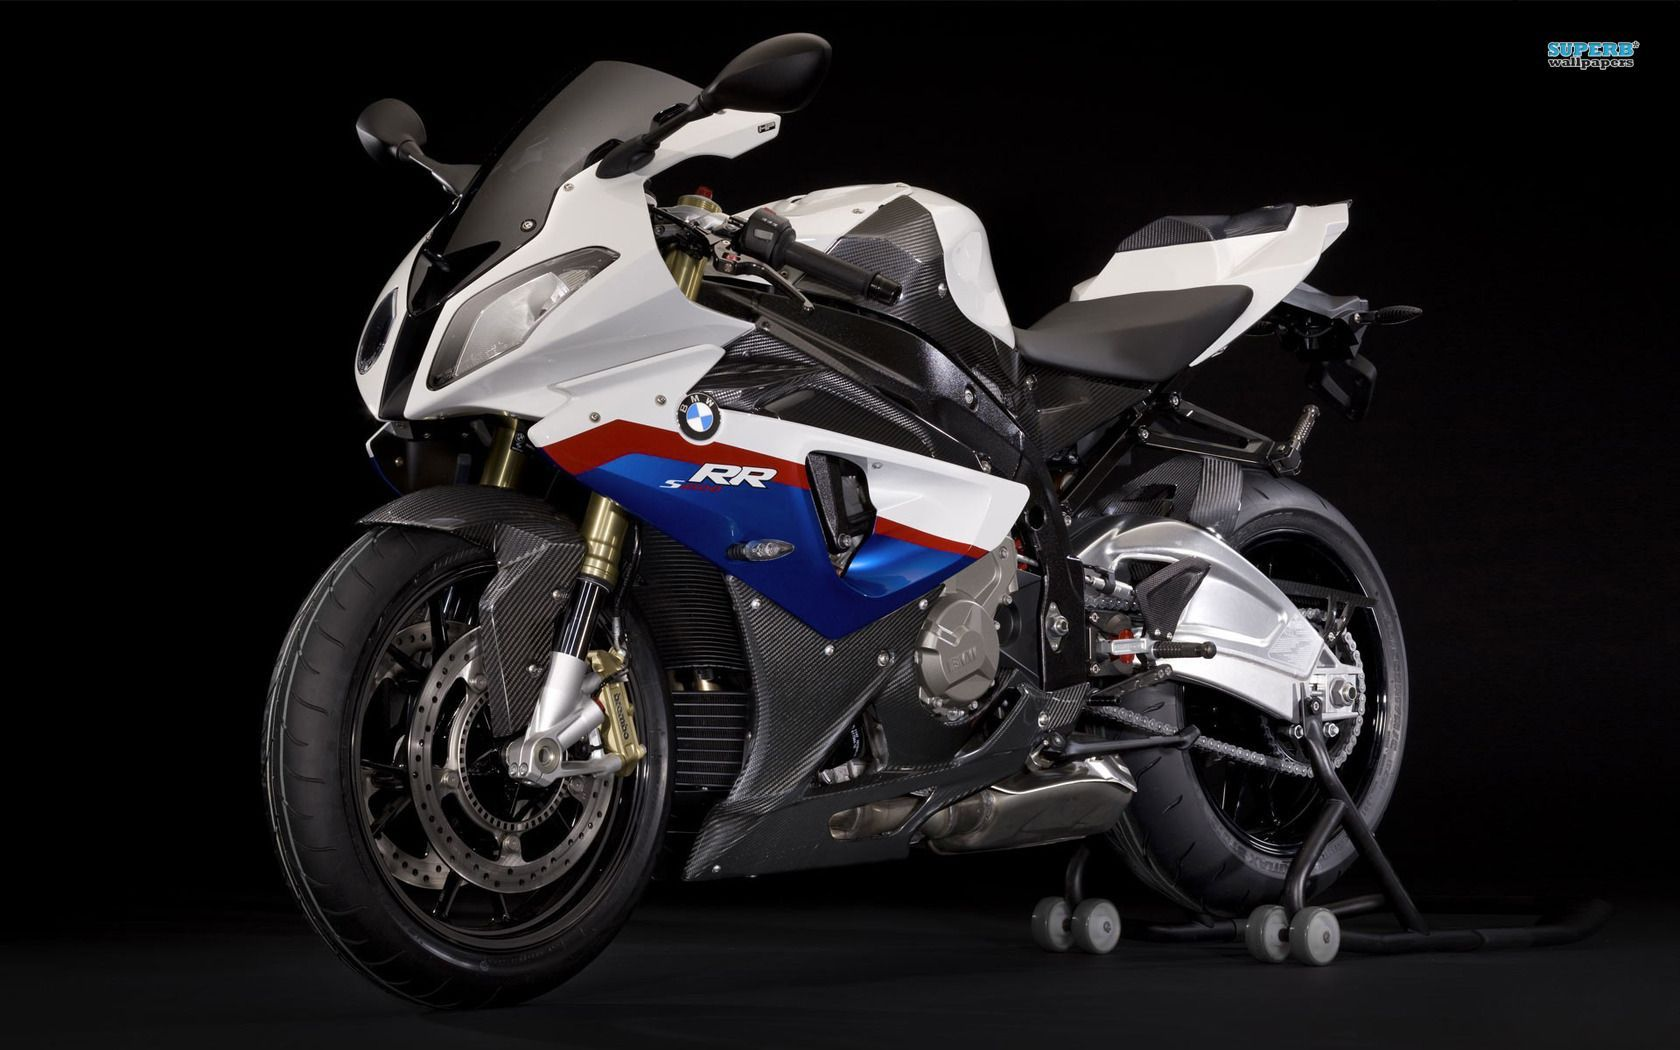 bmw s1000rr wallpapers : get free top quality bmw s1000rr